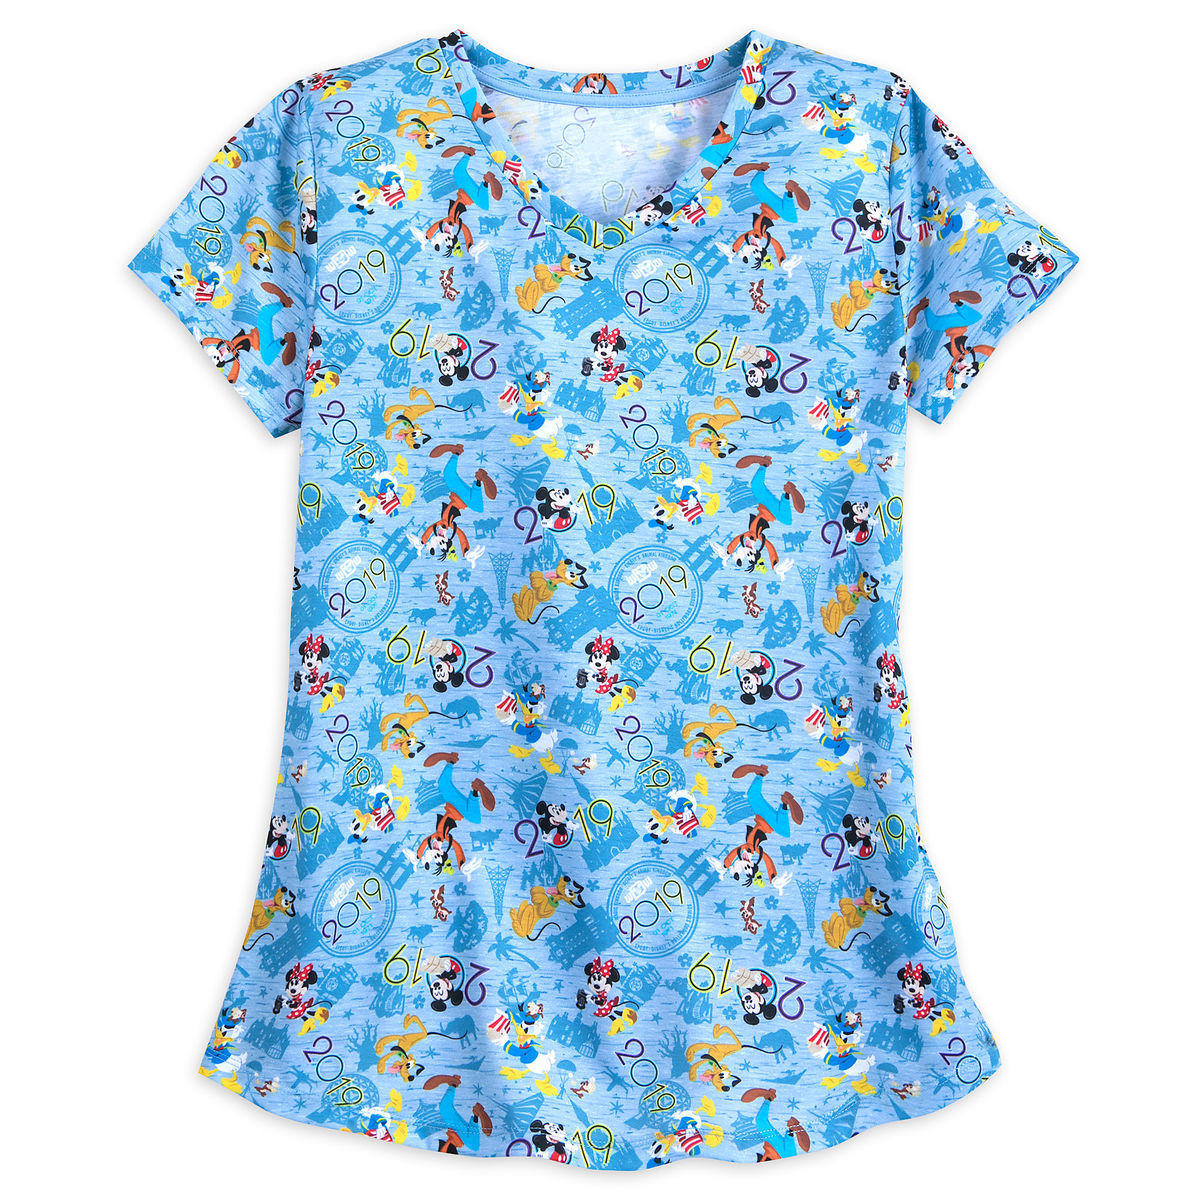 Disney Women's Shirt - 2019 Mickey and Friends V-Neck